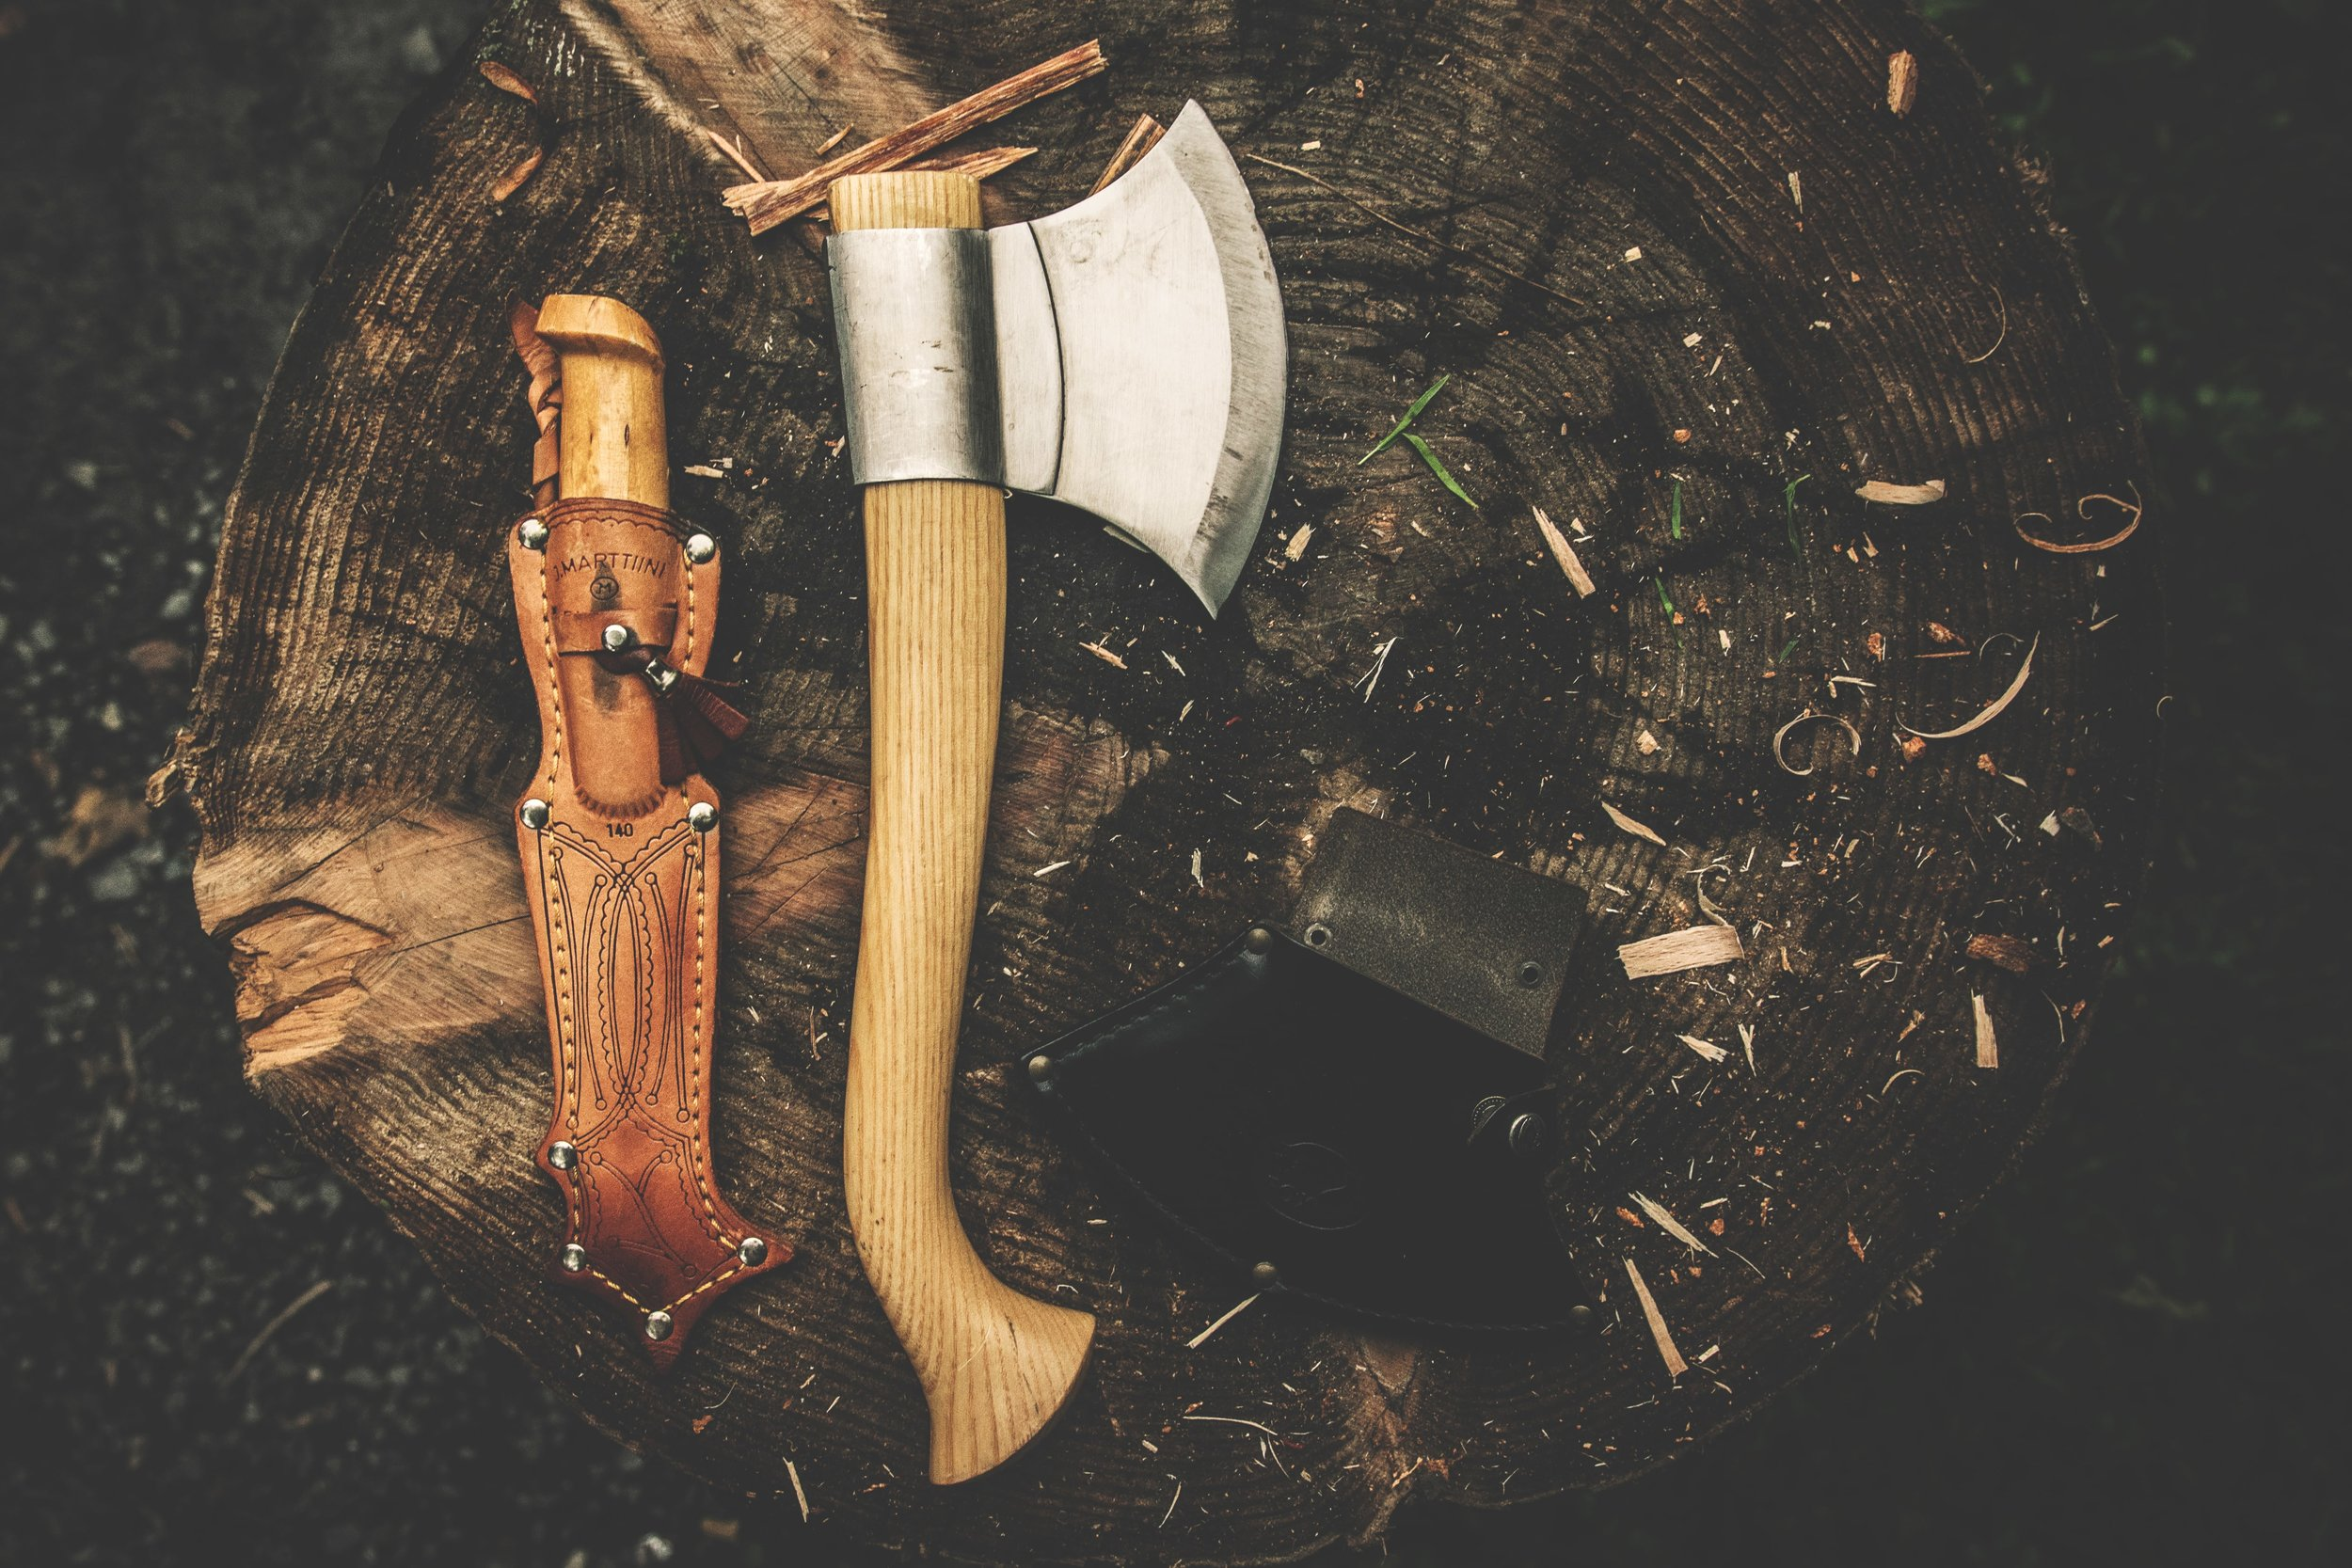 Sharpening the axe